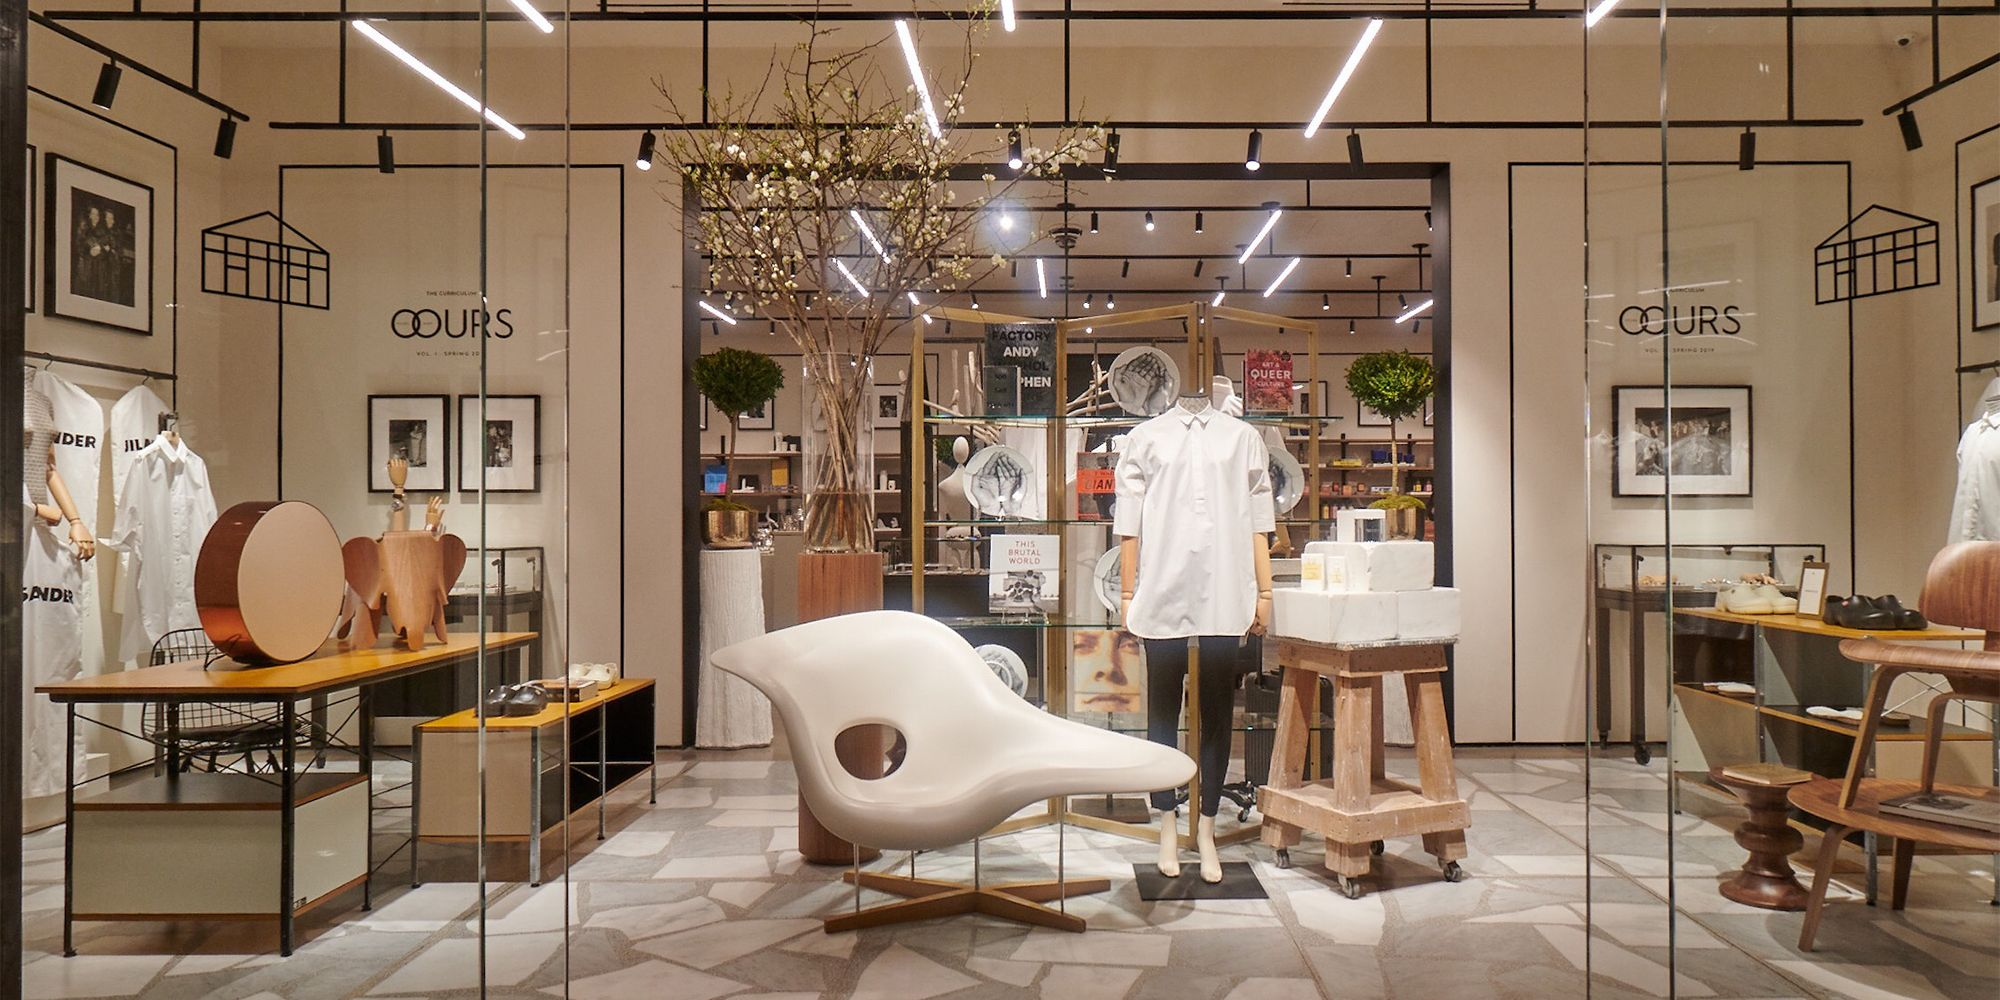 Der Keller Shop Explore The Conservatory A Chic Concept Store At Hudson Yards